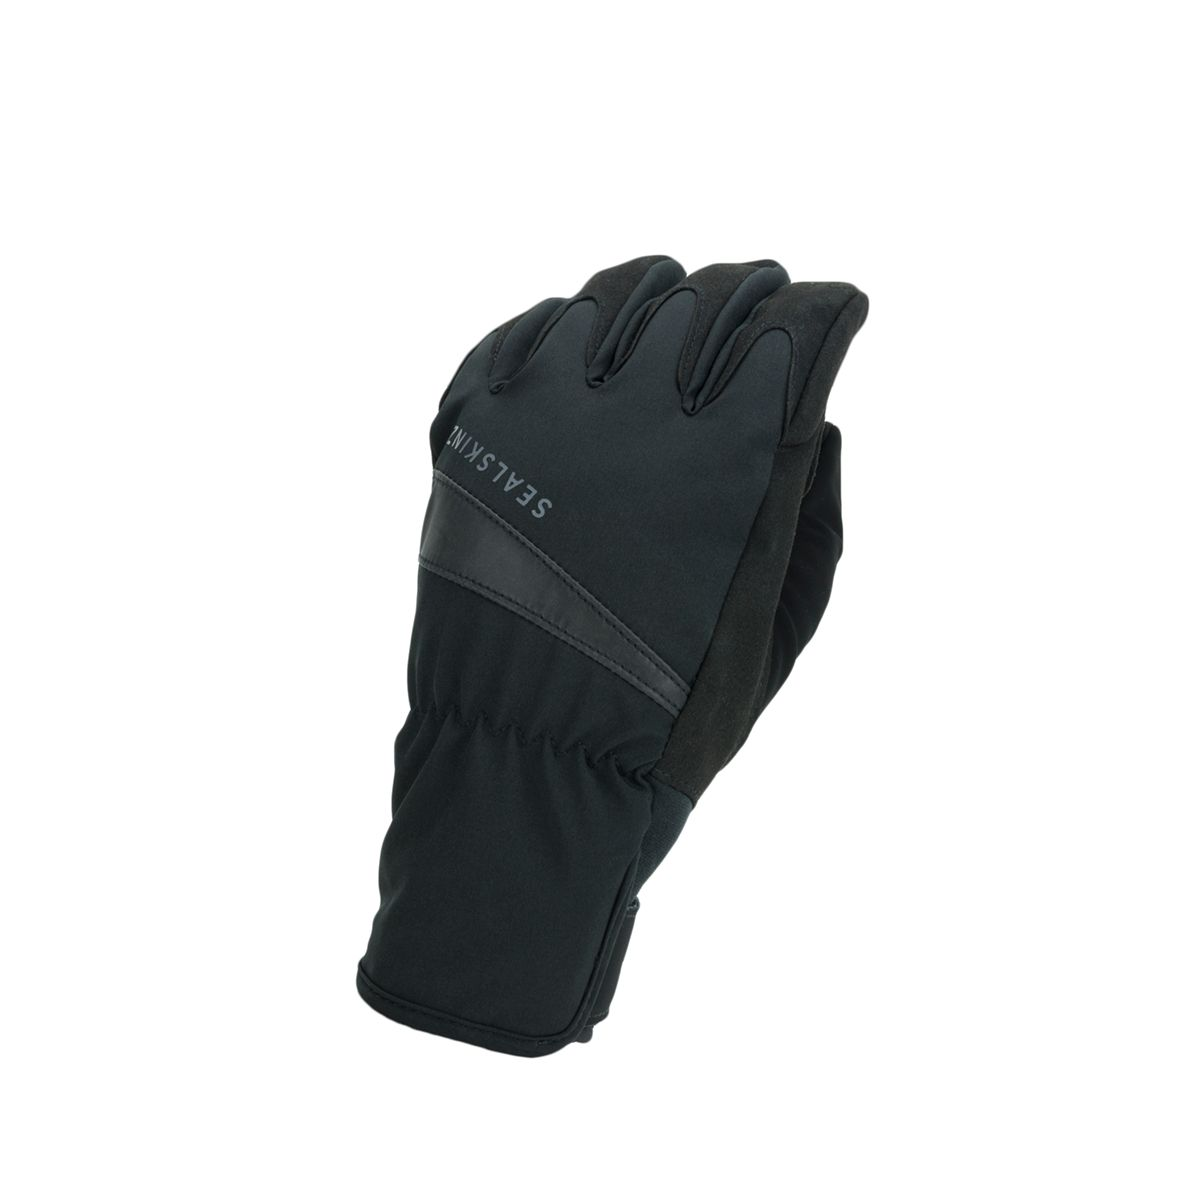 WATERPROOF ALL WEATHER CYCLE GLOVE WOMEN'S FIT